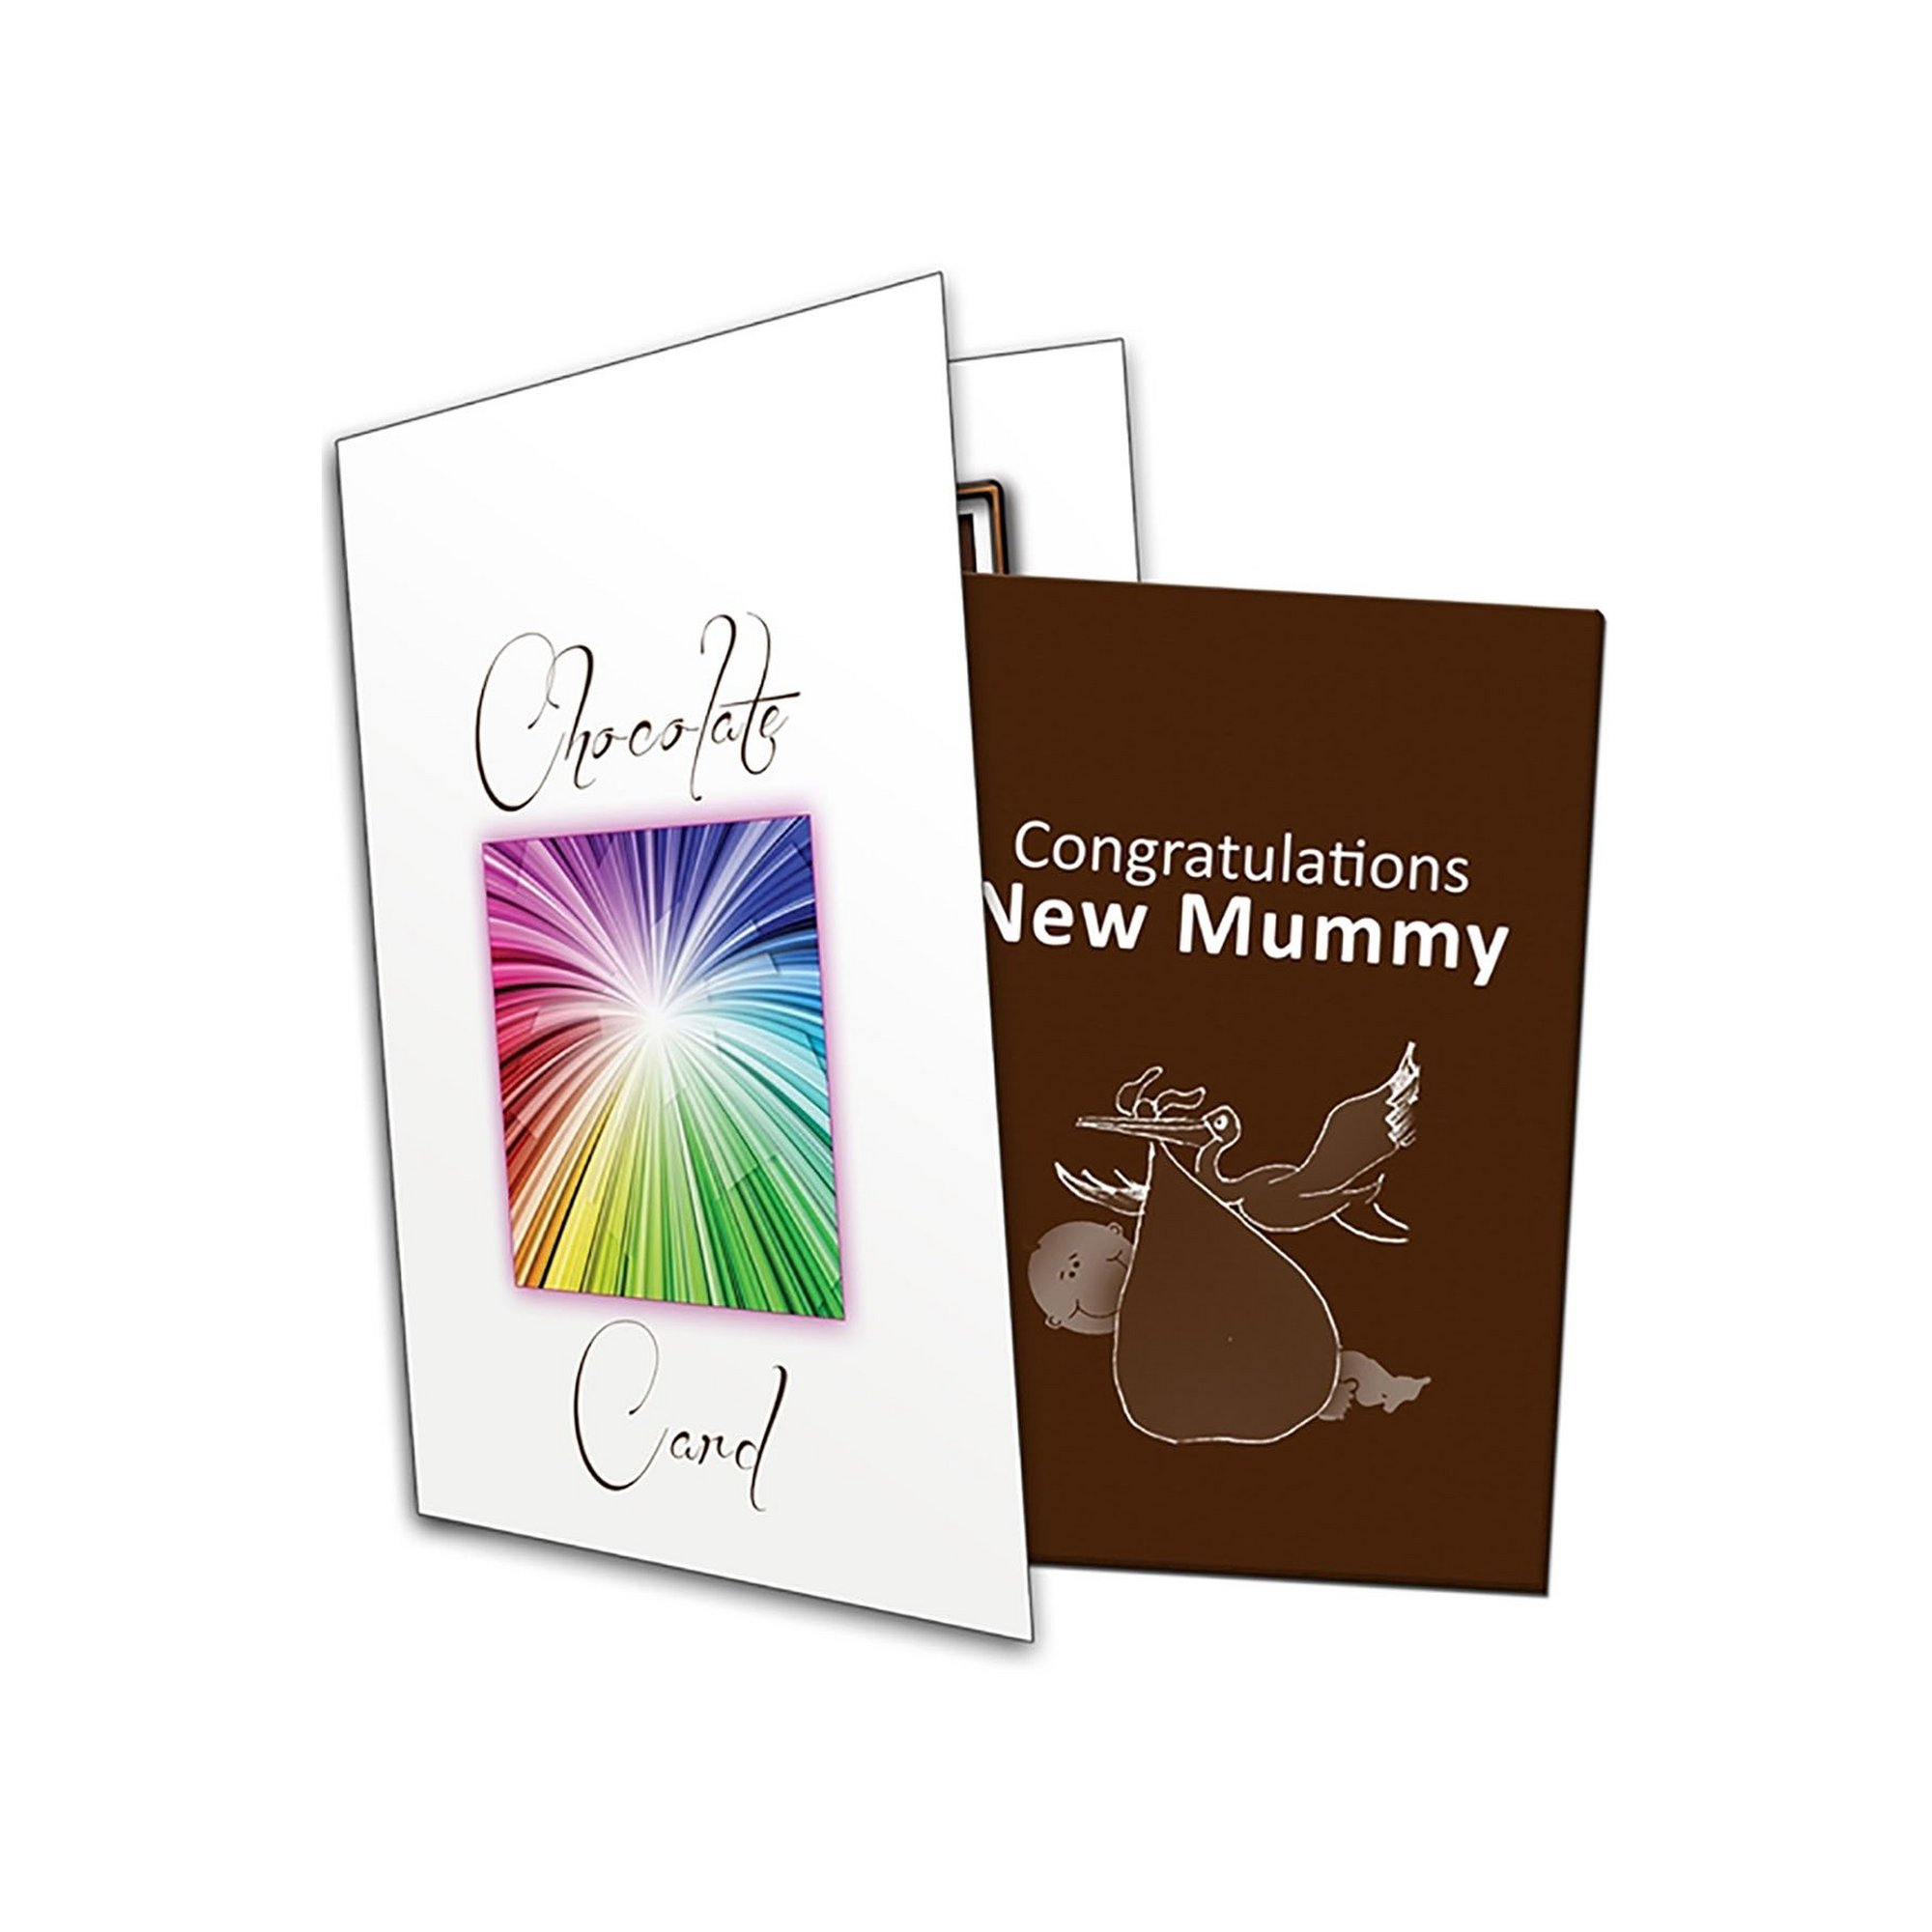 Image of Congratulations New Mummy Chocolate Greetings Card